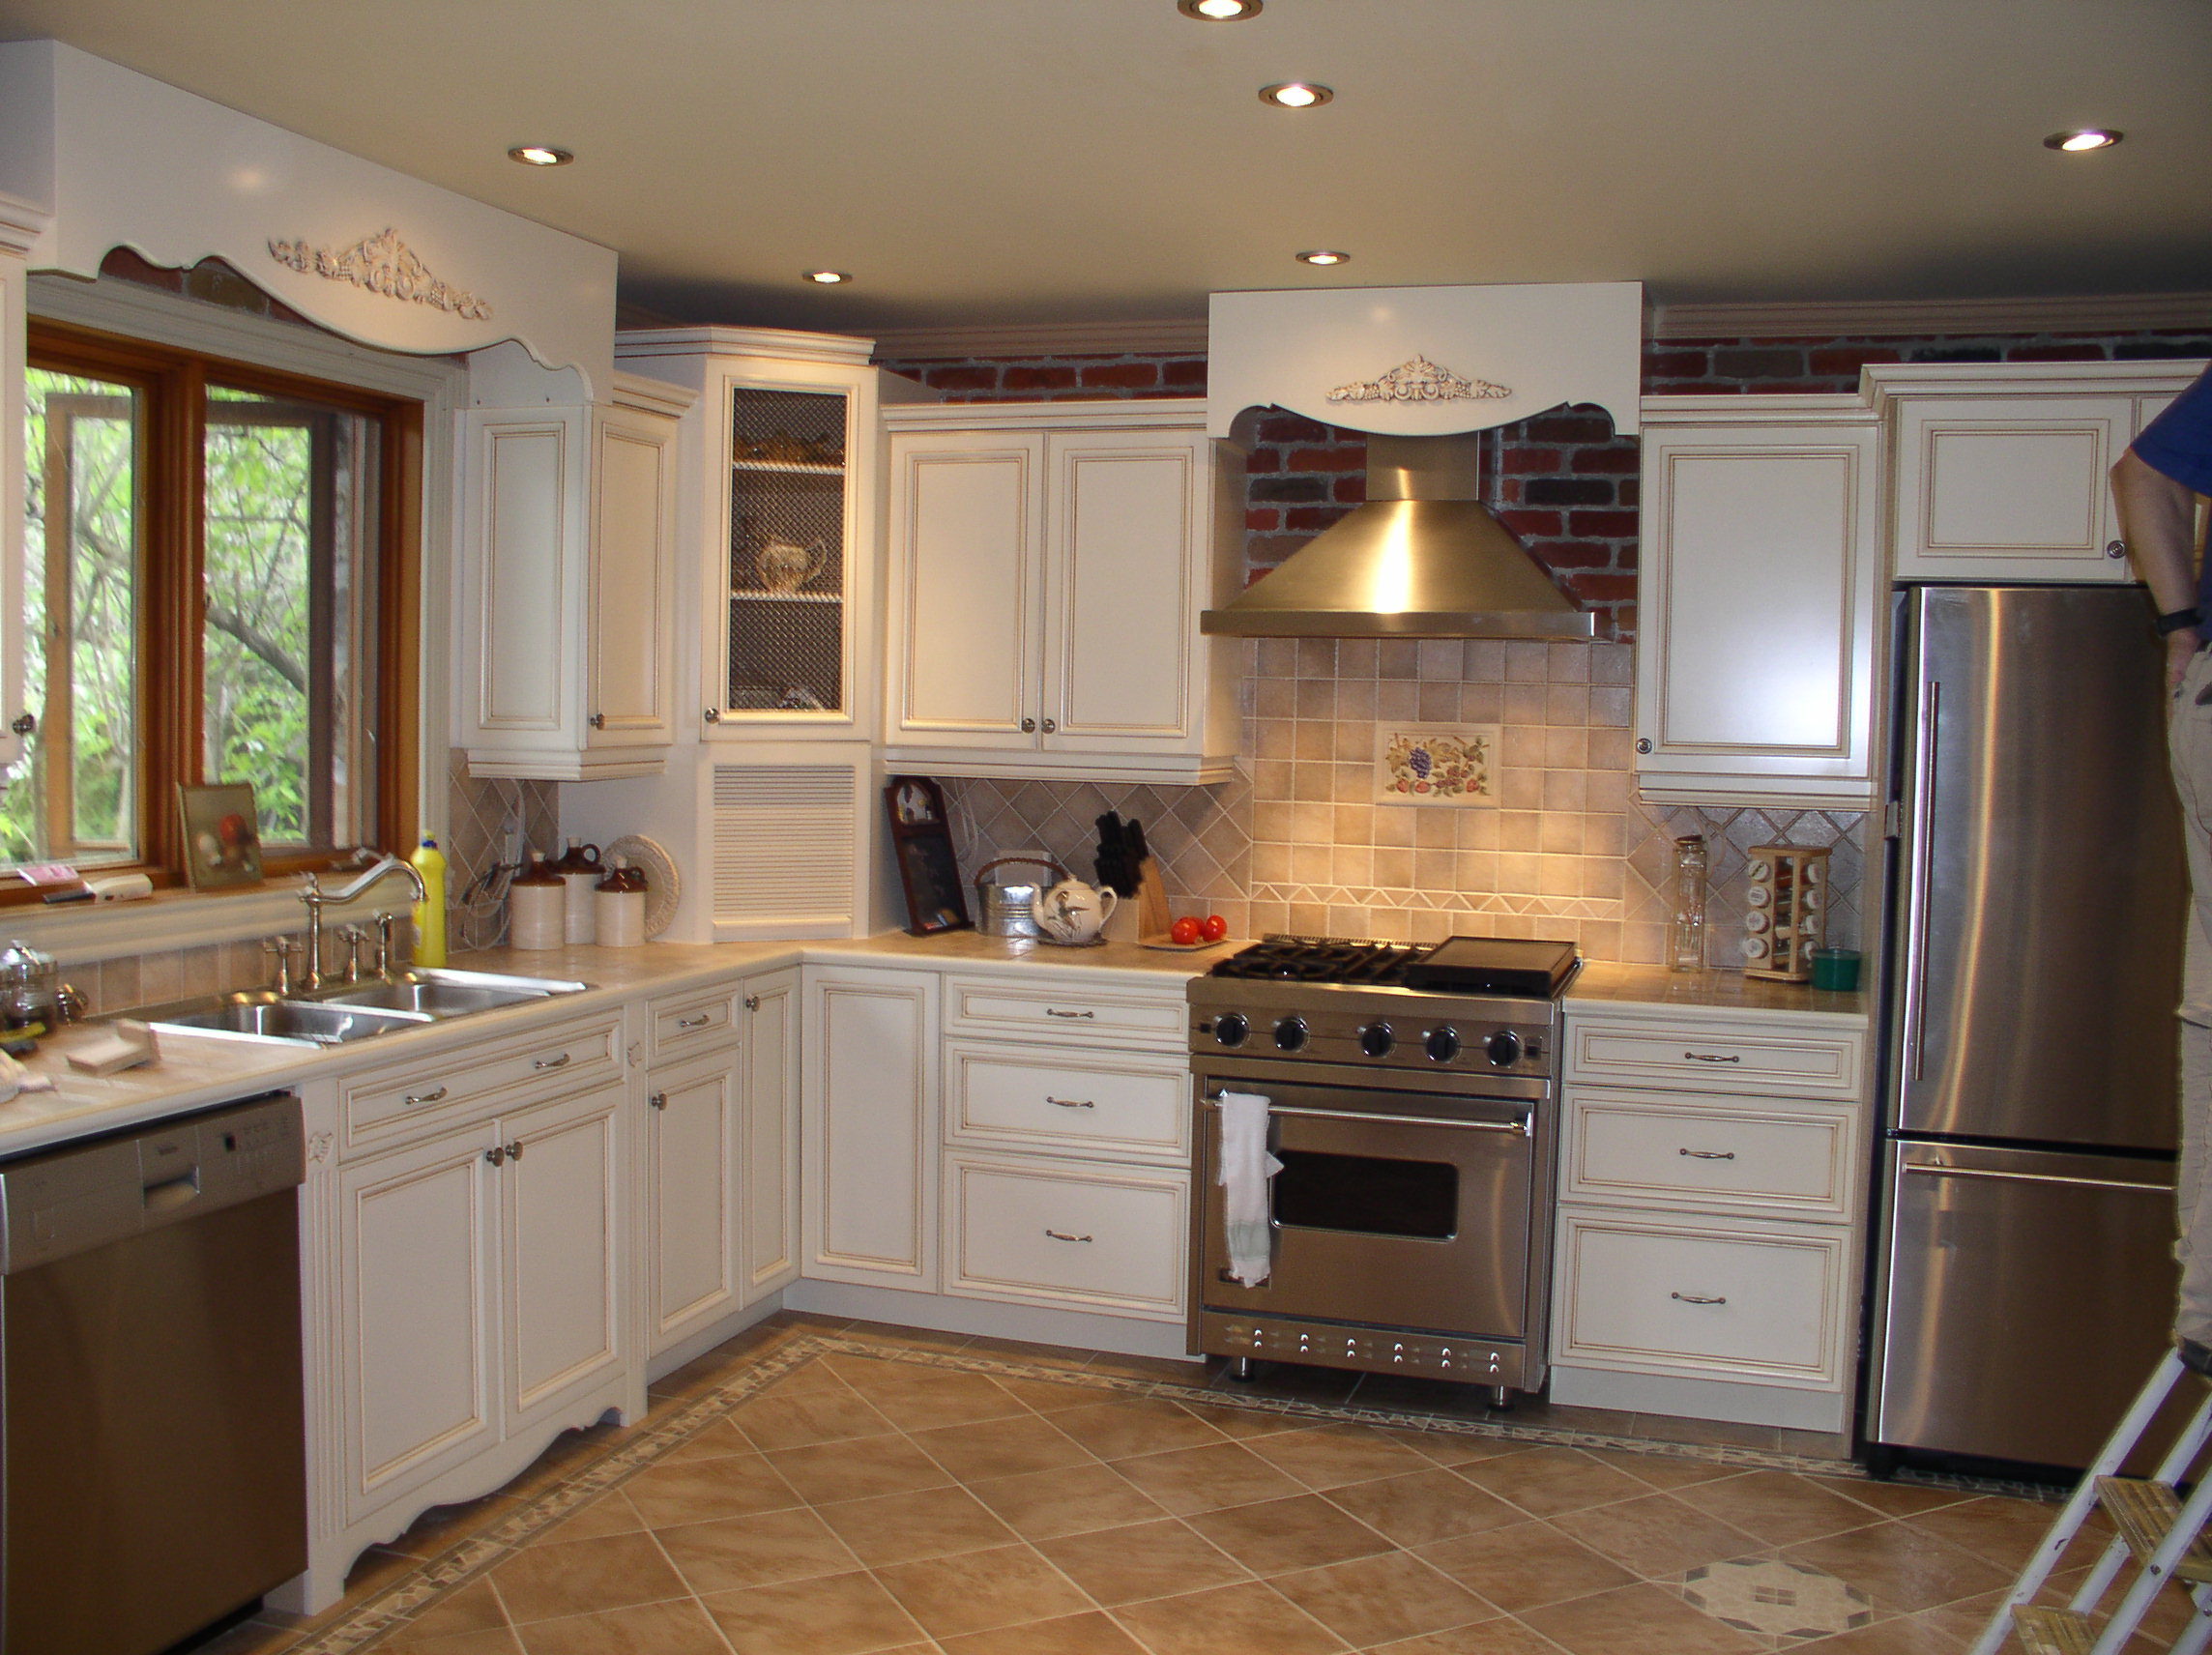 Kitchen Remodeling Ideas Pictures & Photos on Kitchen Remodeling Ideas  id=15888